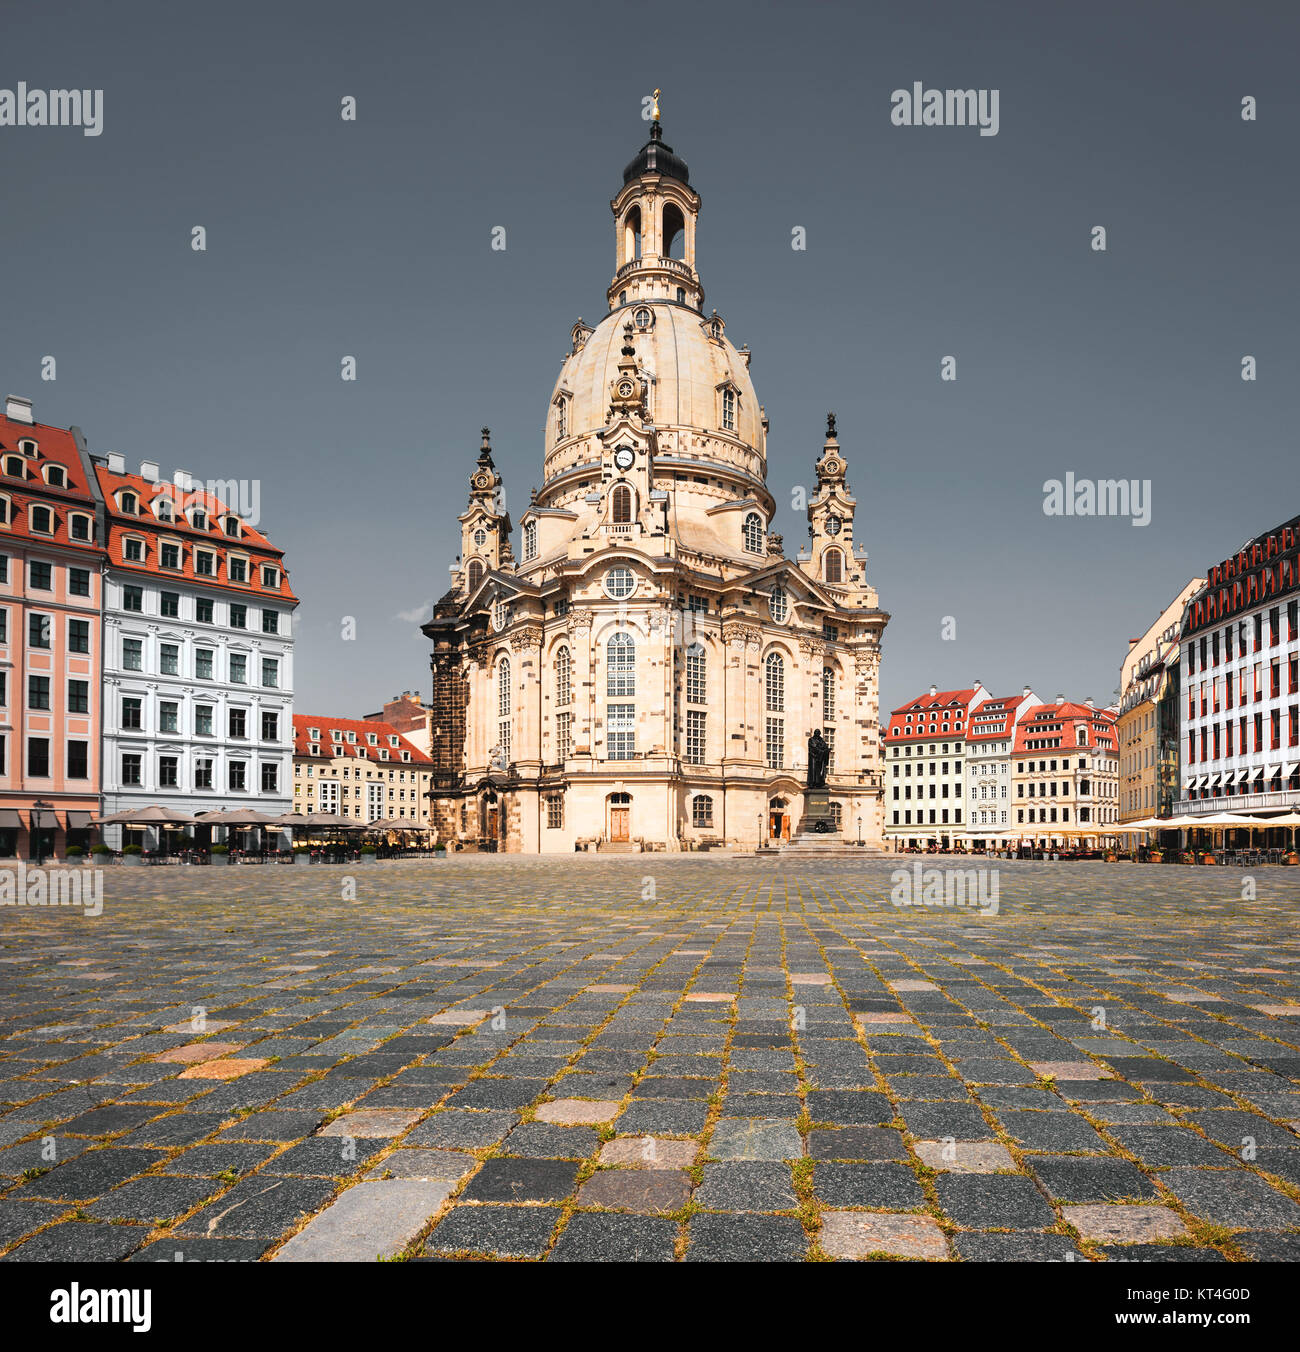 Frauenkirche in Dresden, Saxony, Germany, toned image - Stock Image